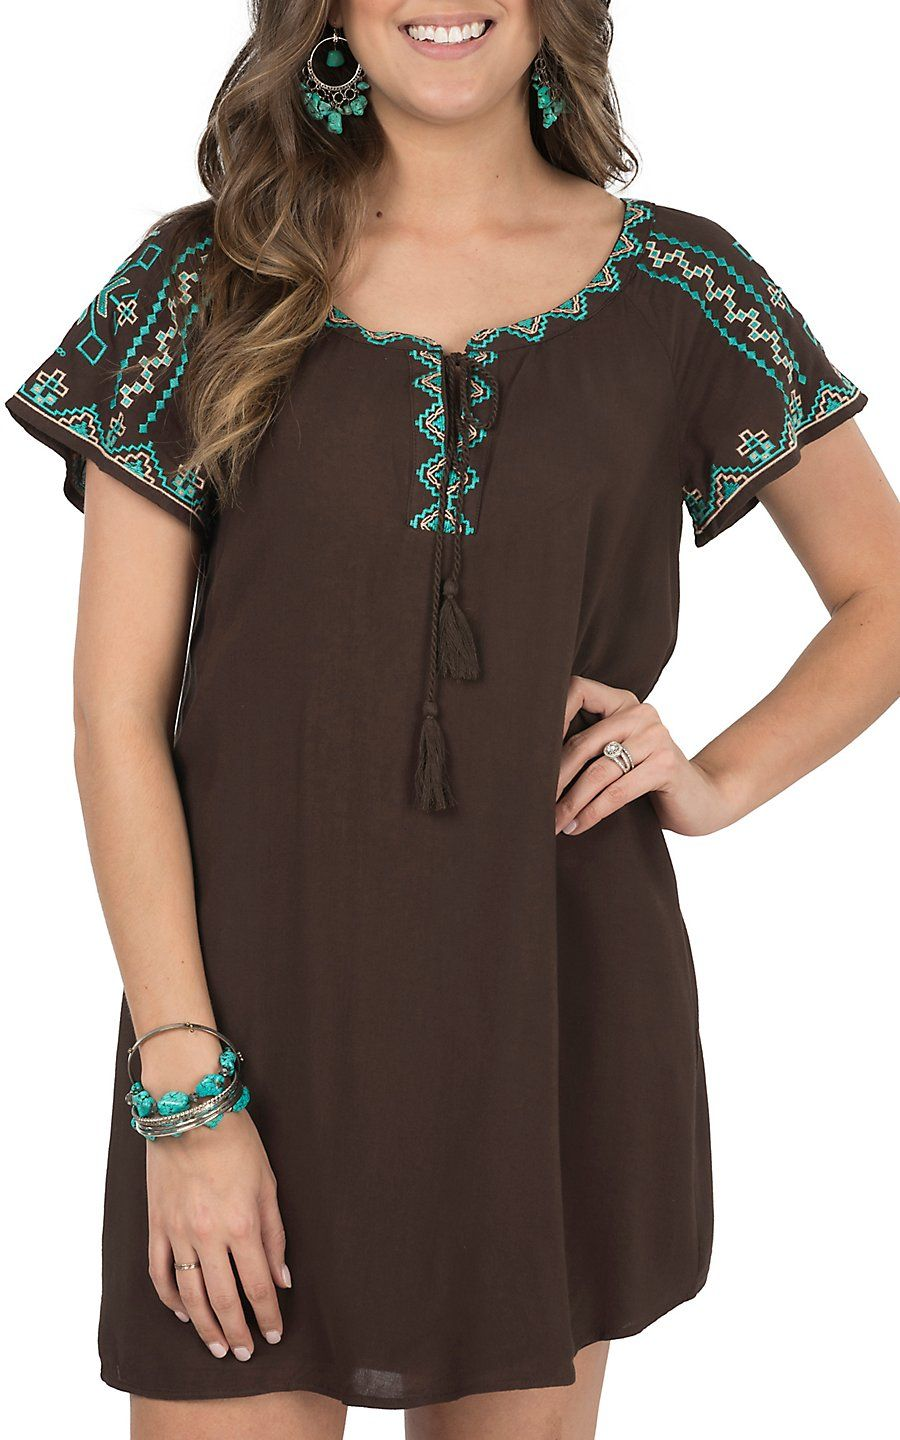 516a11b25cc Flying Tomato Women's Chocolate with Tribal Embroidery Short Sleeve Dress |  Cavender's